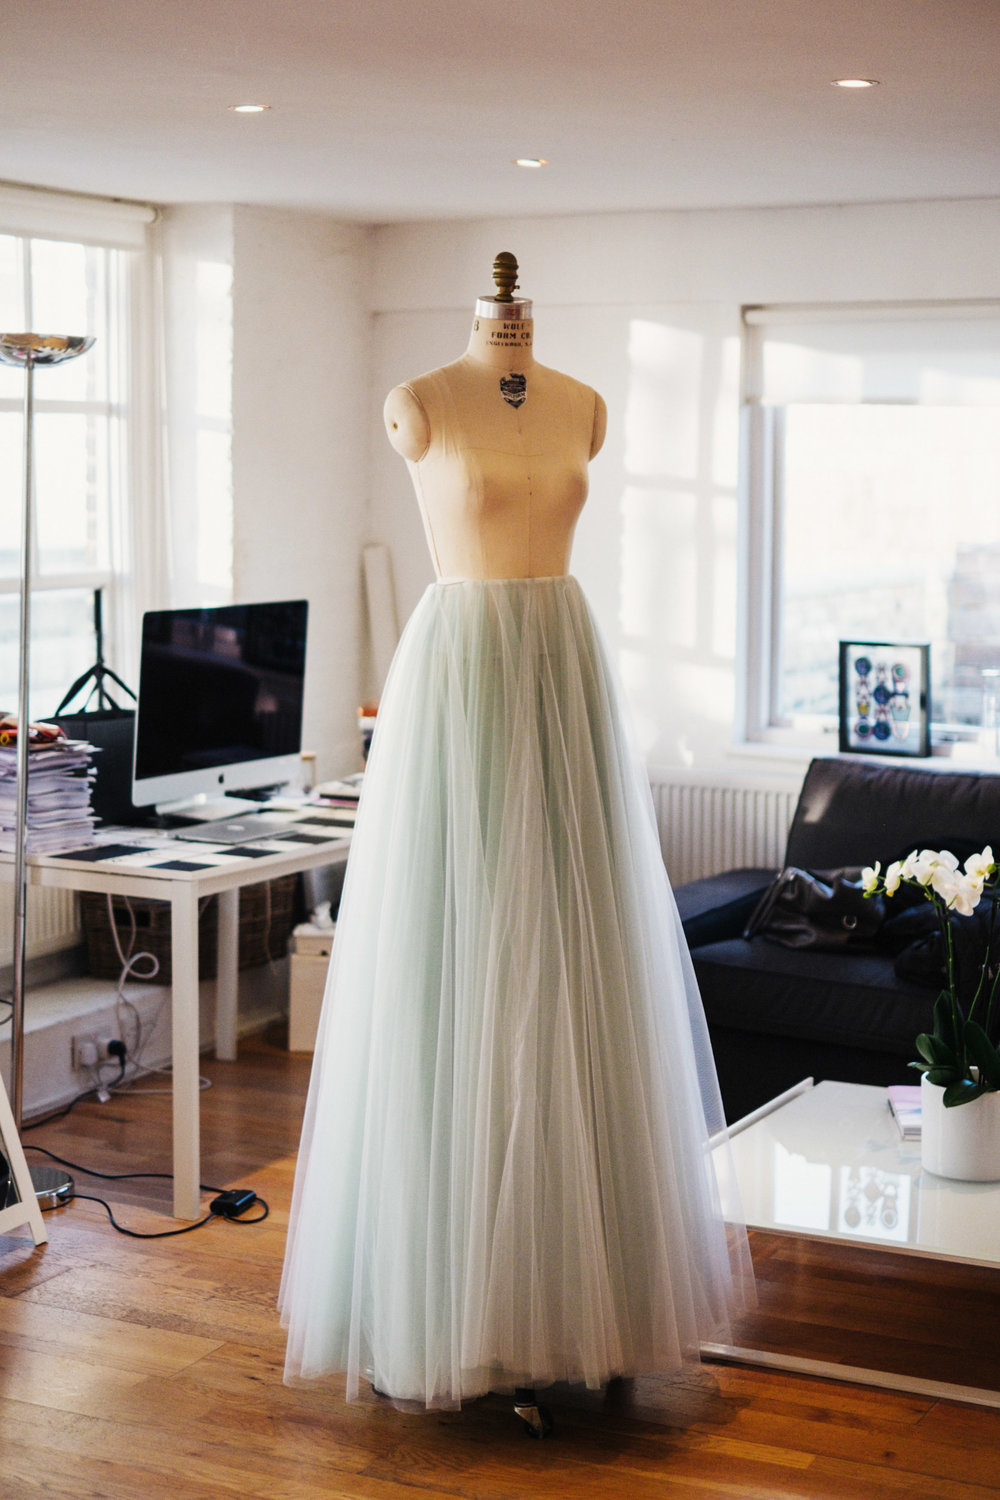 The Making of Mary Katrantzou's Elaborate Tulle Skirts   for T: The New York Times Style Magazine